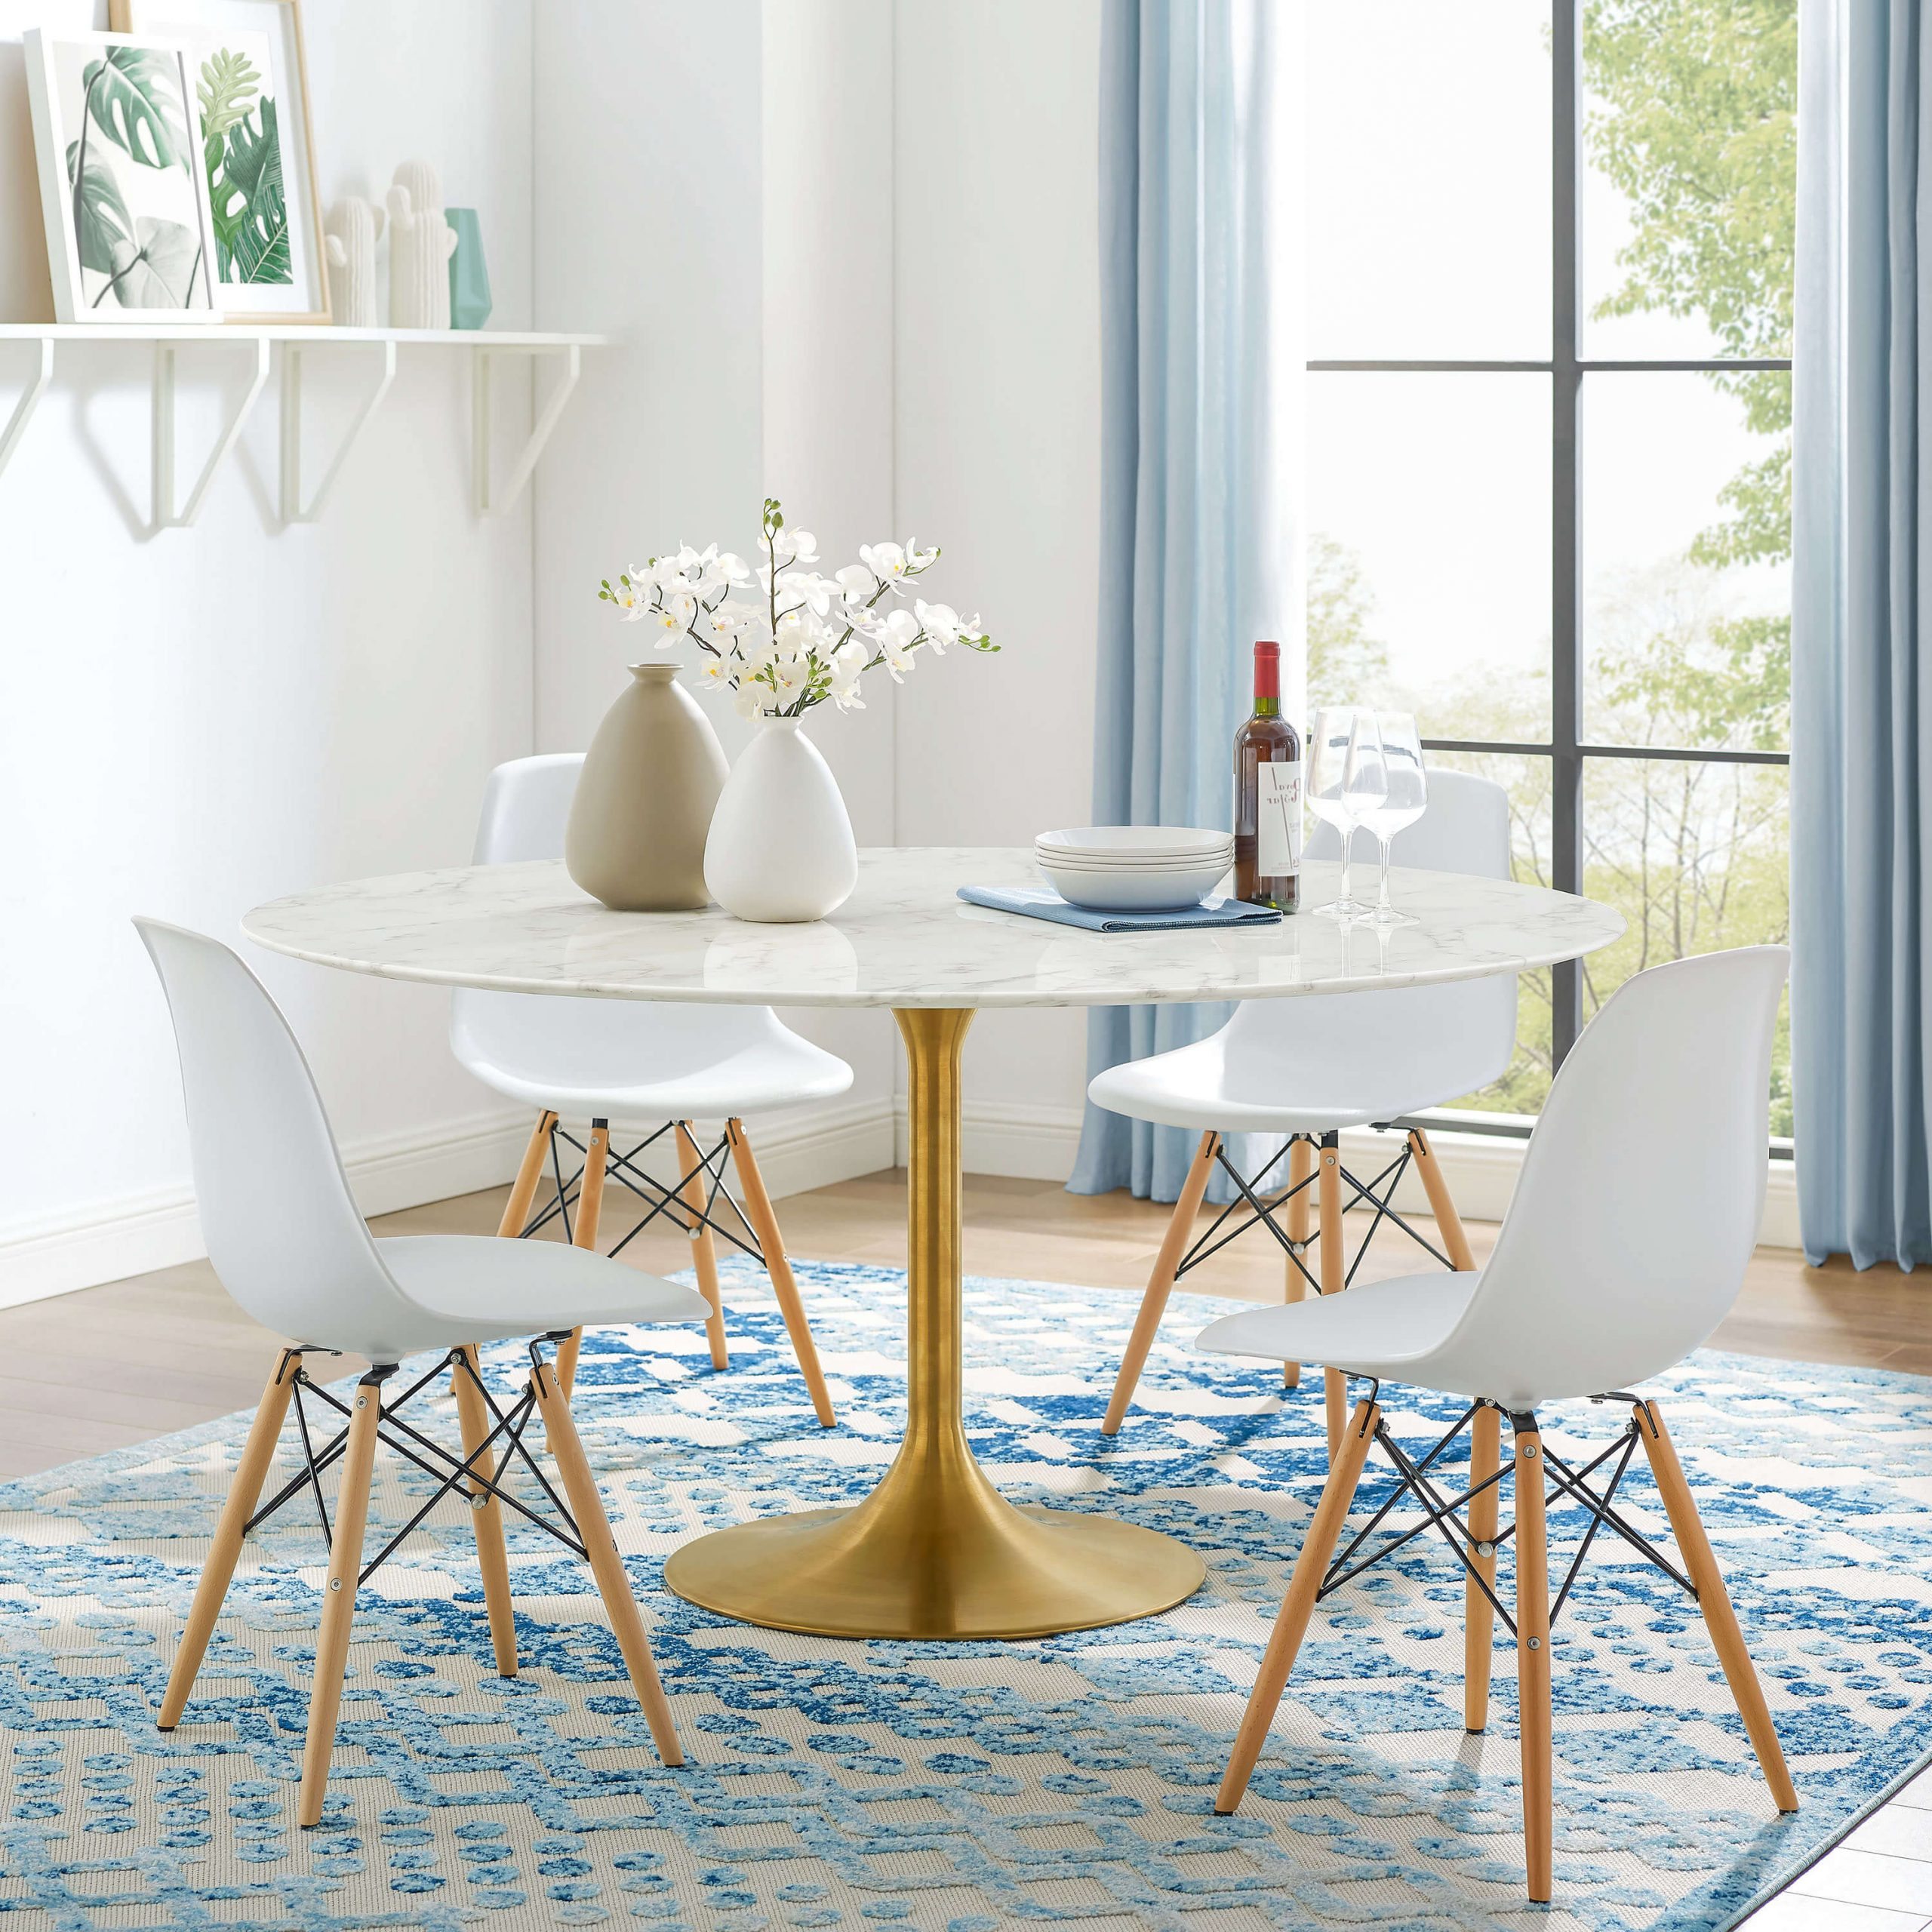 4 Things To Consider When Choosing Your Perfect Modern With Regard To Most Up To Date Contemporary 4 Seating Square Dining Tables (View 3 of 30)